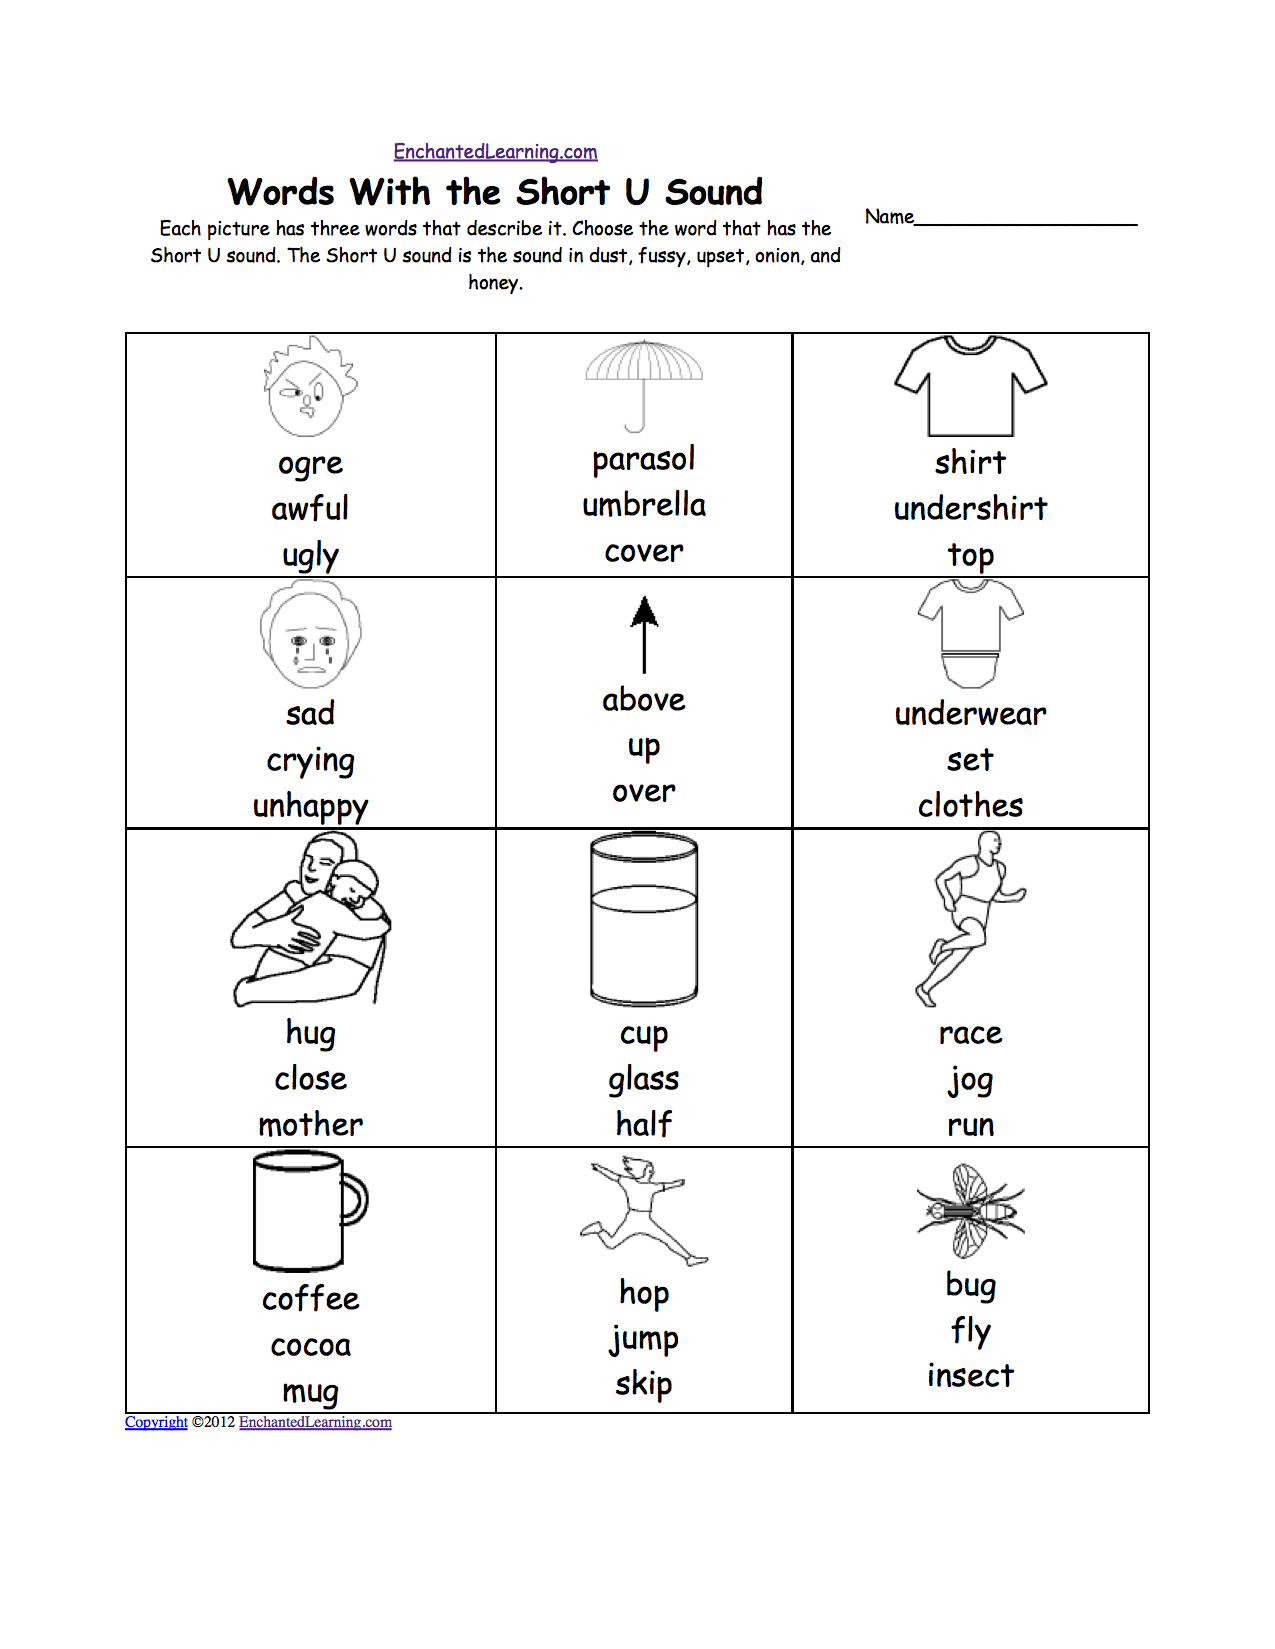 Phonics Worksheets: Multiple Choice Worksheets to Print -  EnchantedLearning.com